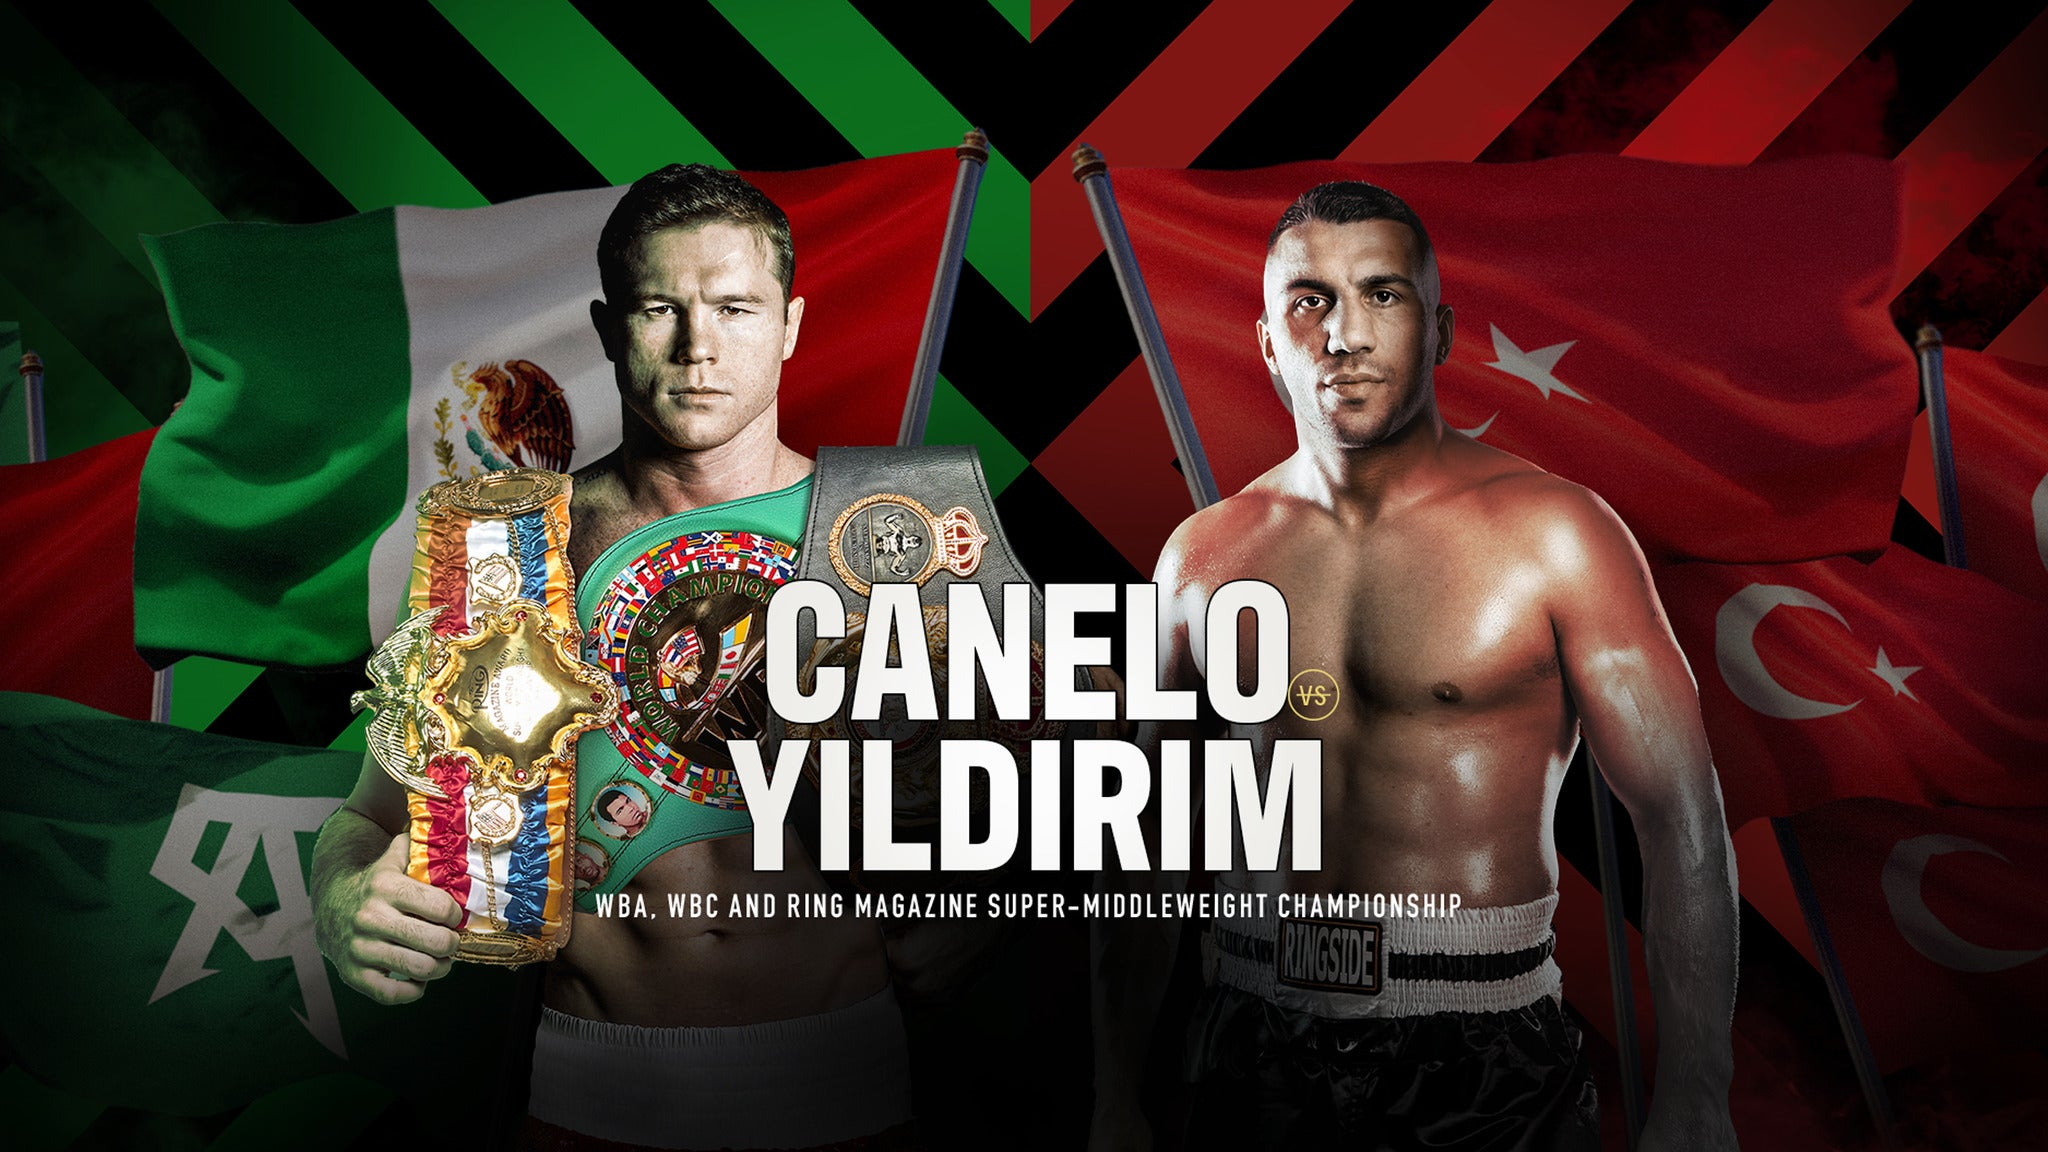 Canelo v. Yildirim PPV Viewing Party